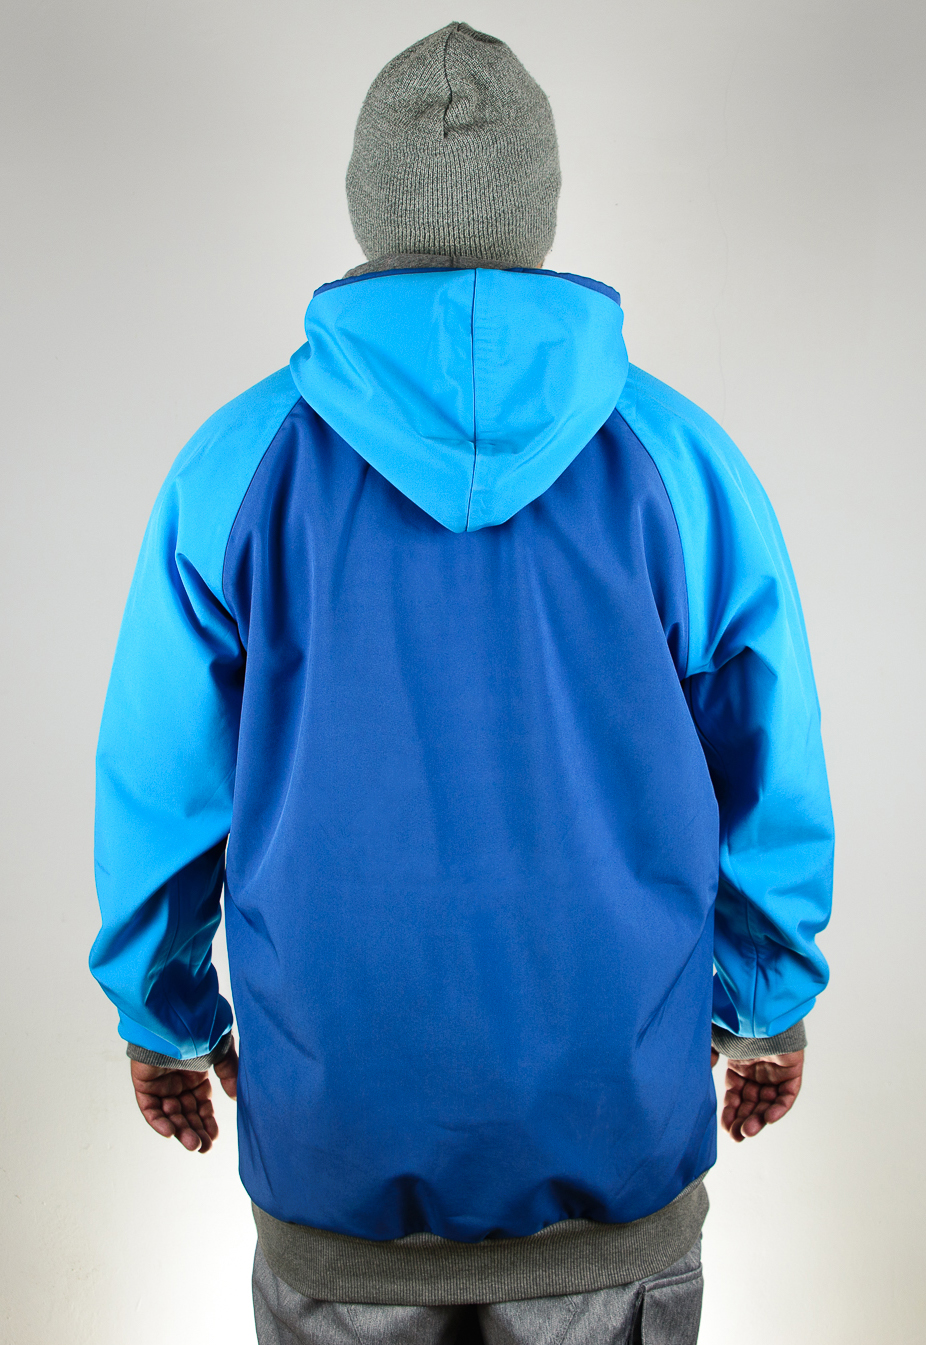 IceSkull Ezy Rider Snowboard Softshell Technical Hoodie Blue & Sky Blue Back